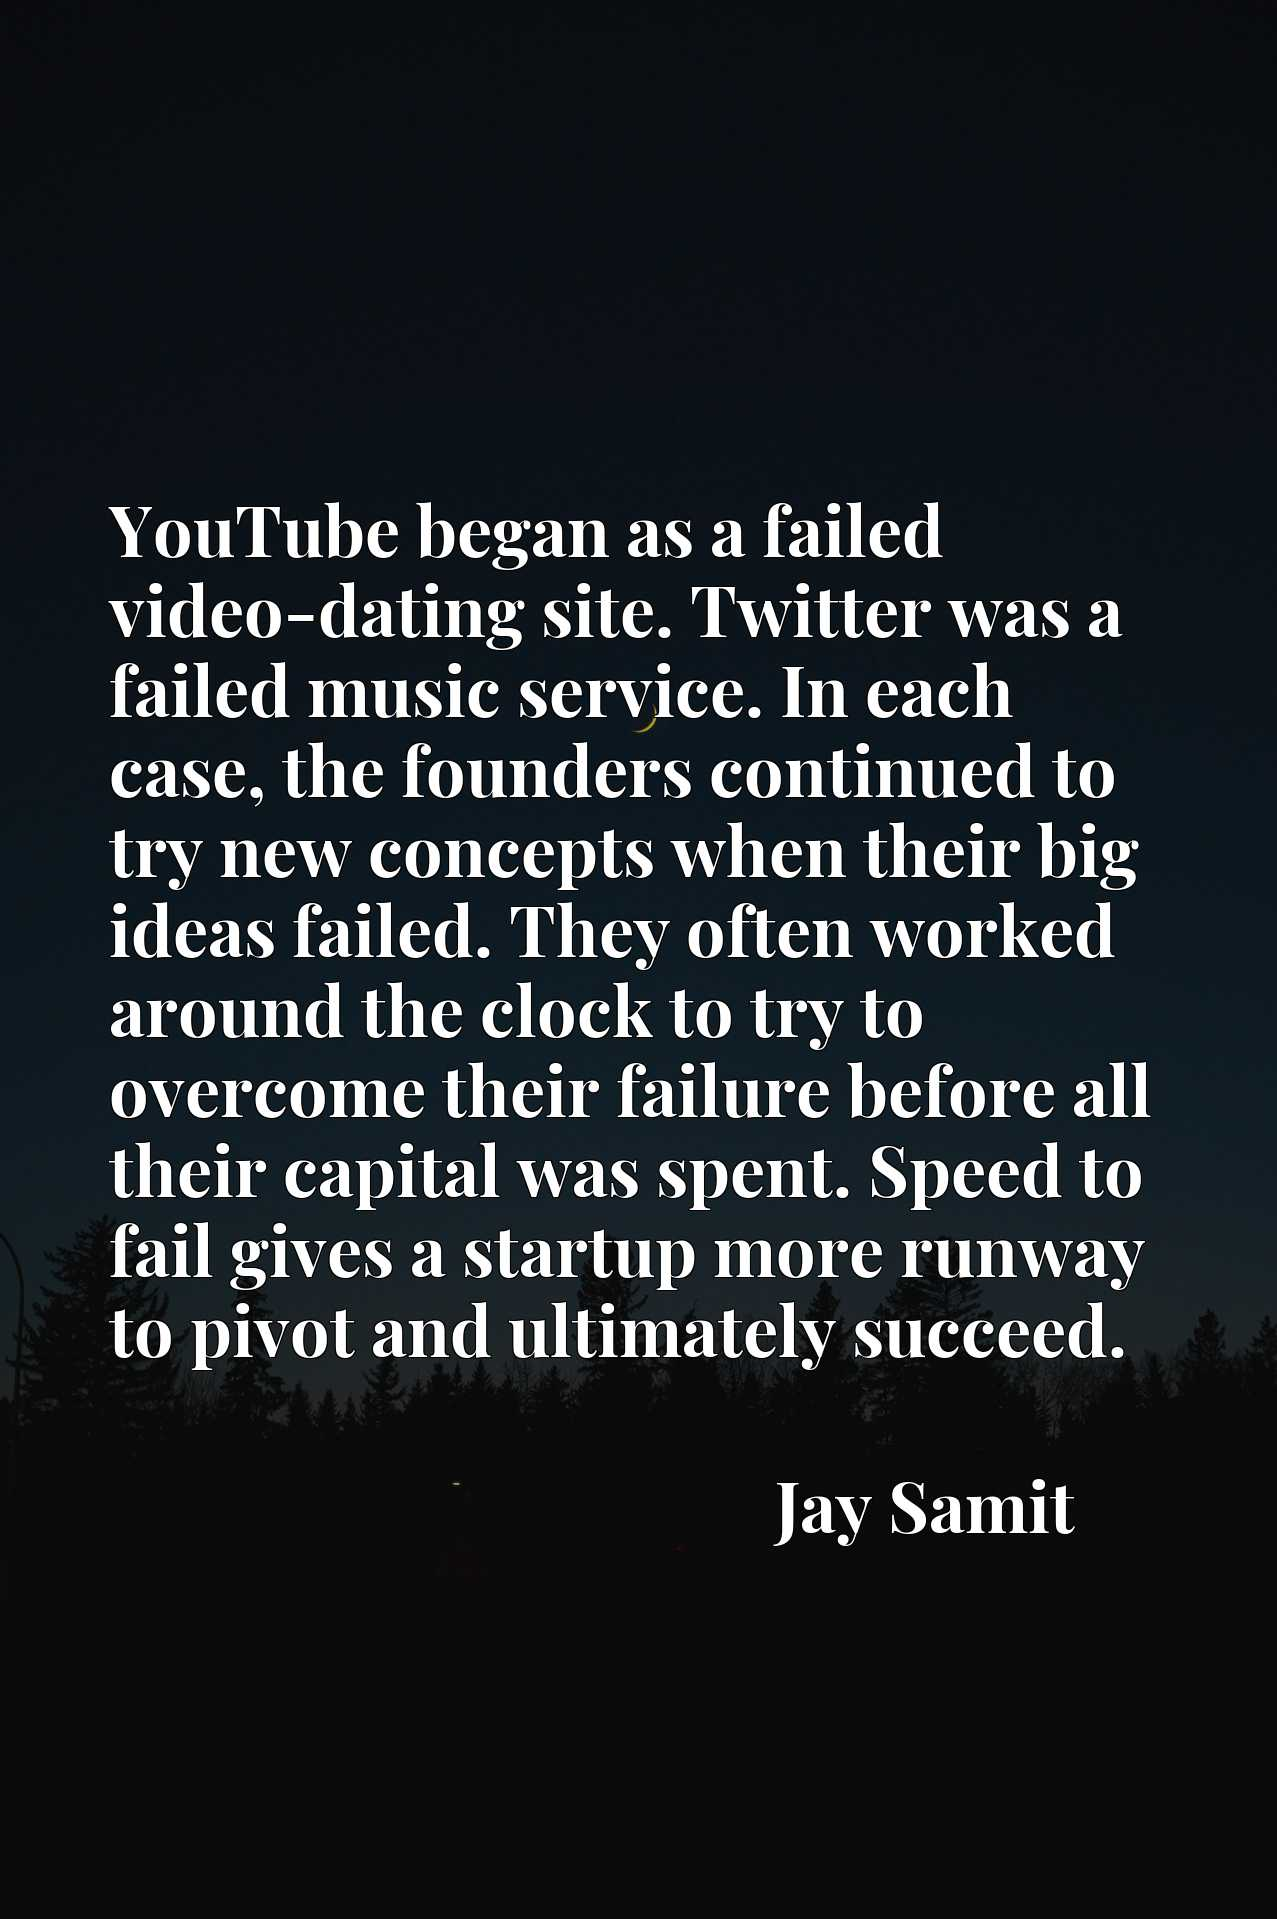 YouTube began as a failed video-dating site. Twitter was a failed music service. In each case, the founders continued to try new concepts when their big ideas failed. They often worked around the clock to try to overcome their failure before all their capital was spent. Speed to fail gives a startup more runway to pivot and ultimately succeed.